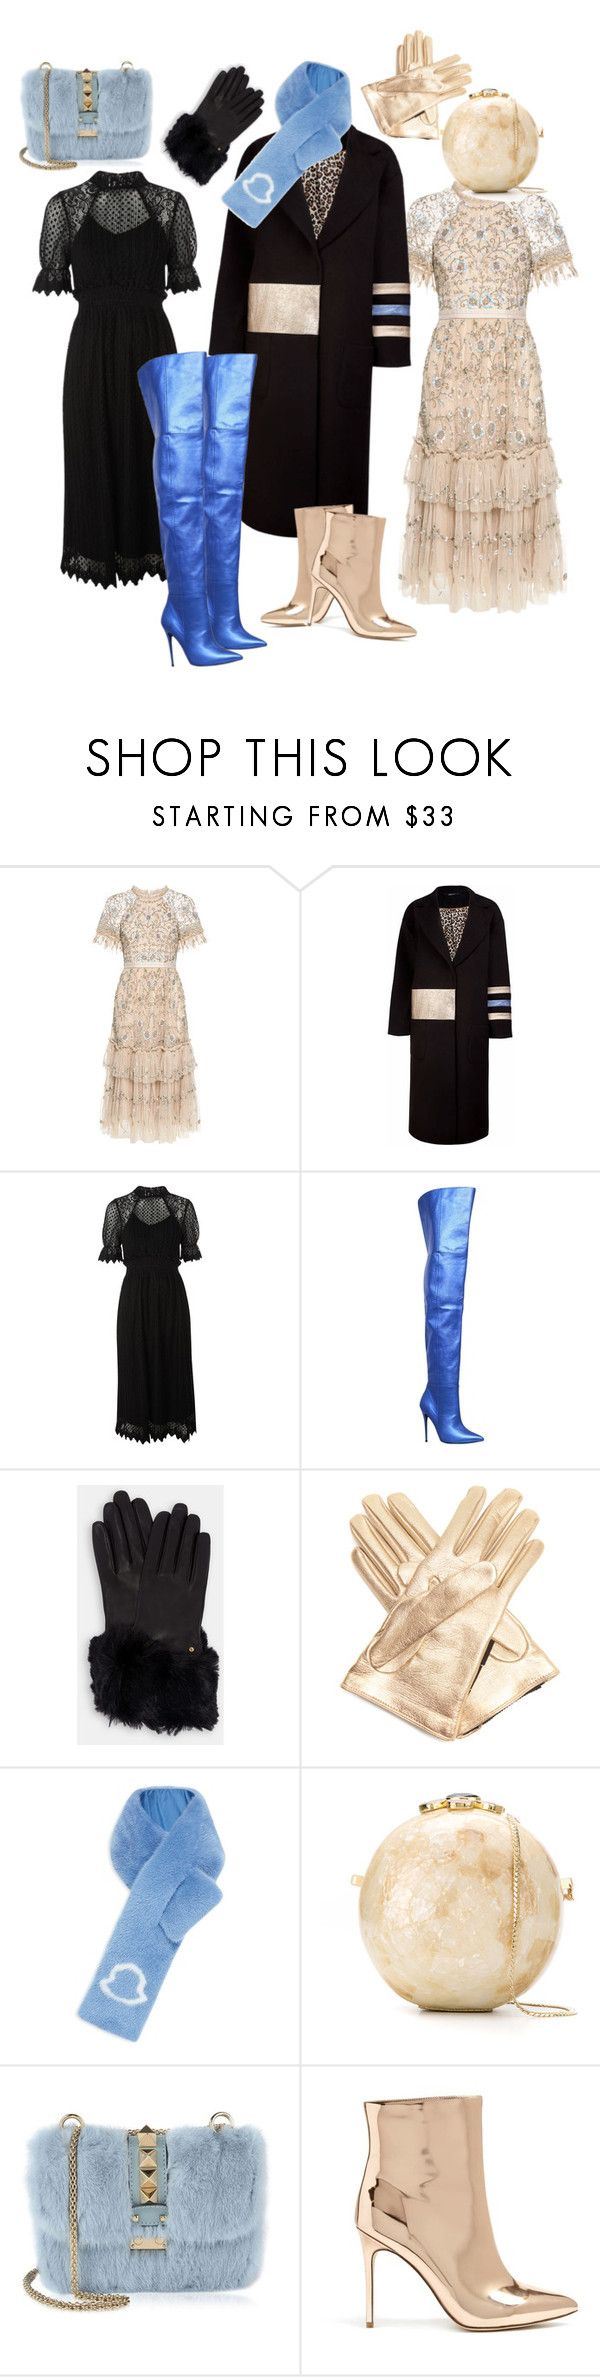 """Без названия #29"" by lizabethz ❤ liked on Polyvore featuring Needle & Thread, TFNC, Kurt Geiger, Ted Baker, Gucci, Moncler, Serpui, Valentino and Forever 21"